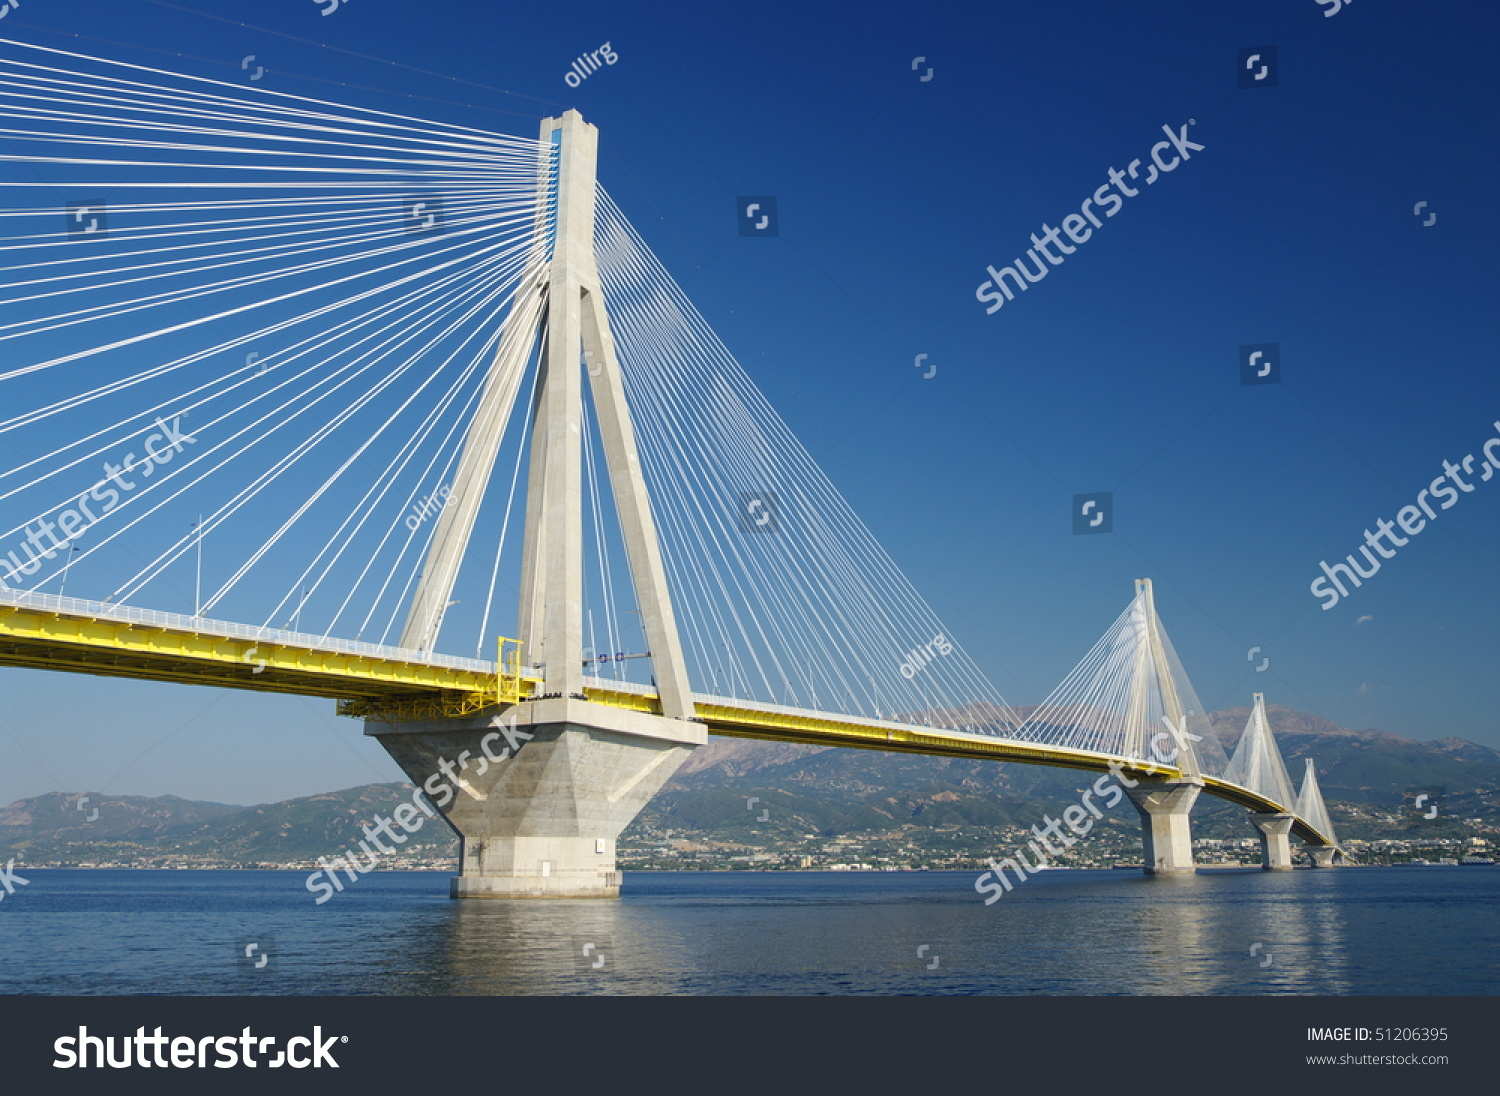 suspension bridge crossing Corinth Gulf strait, Greece. Is the world's second longest cable-stayed bridge #51206395